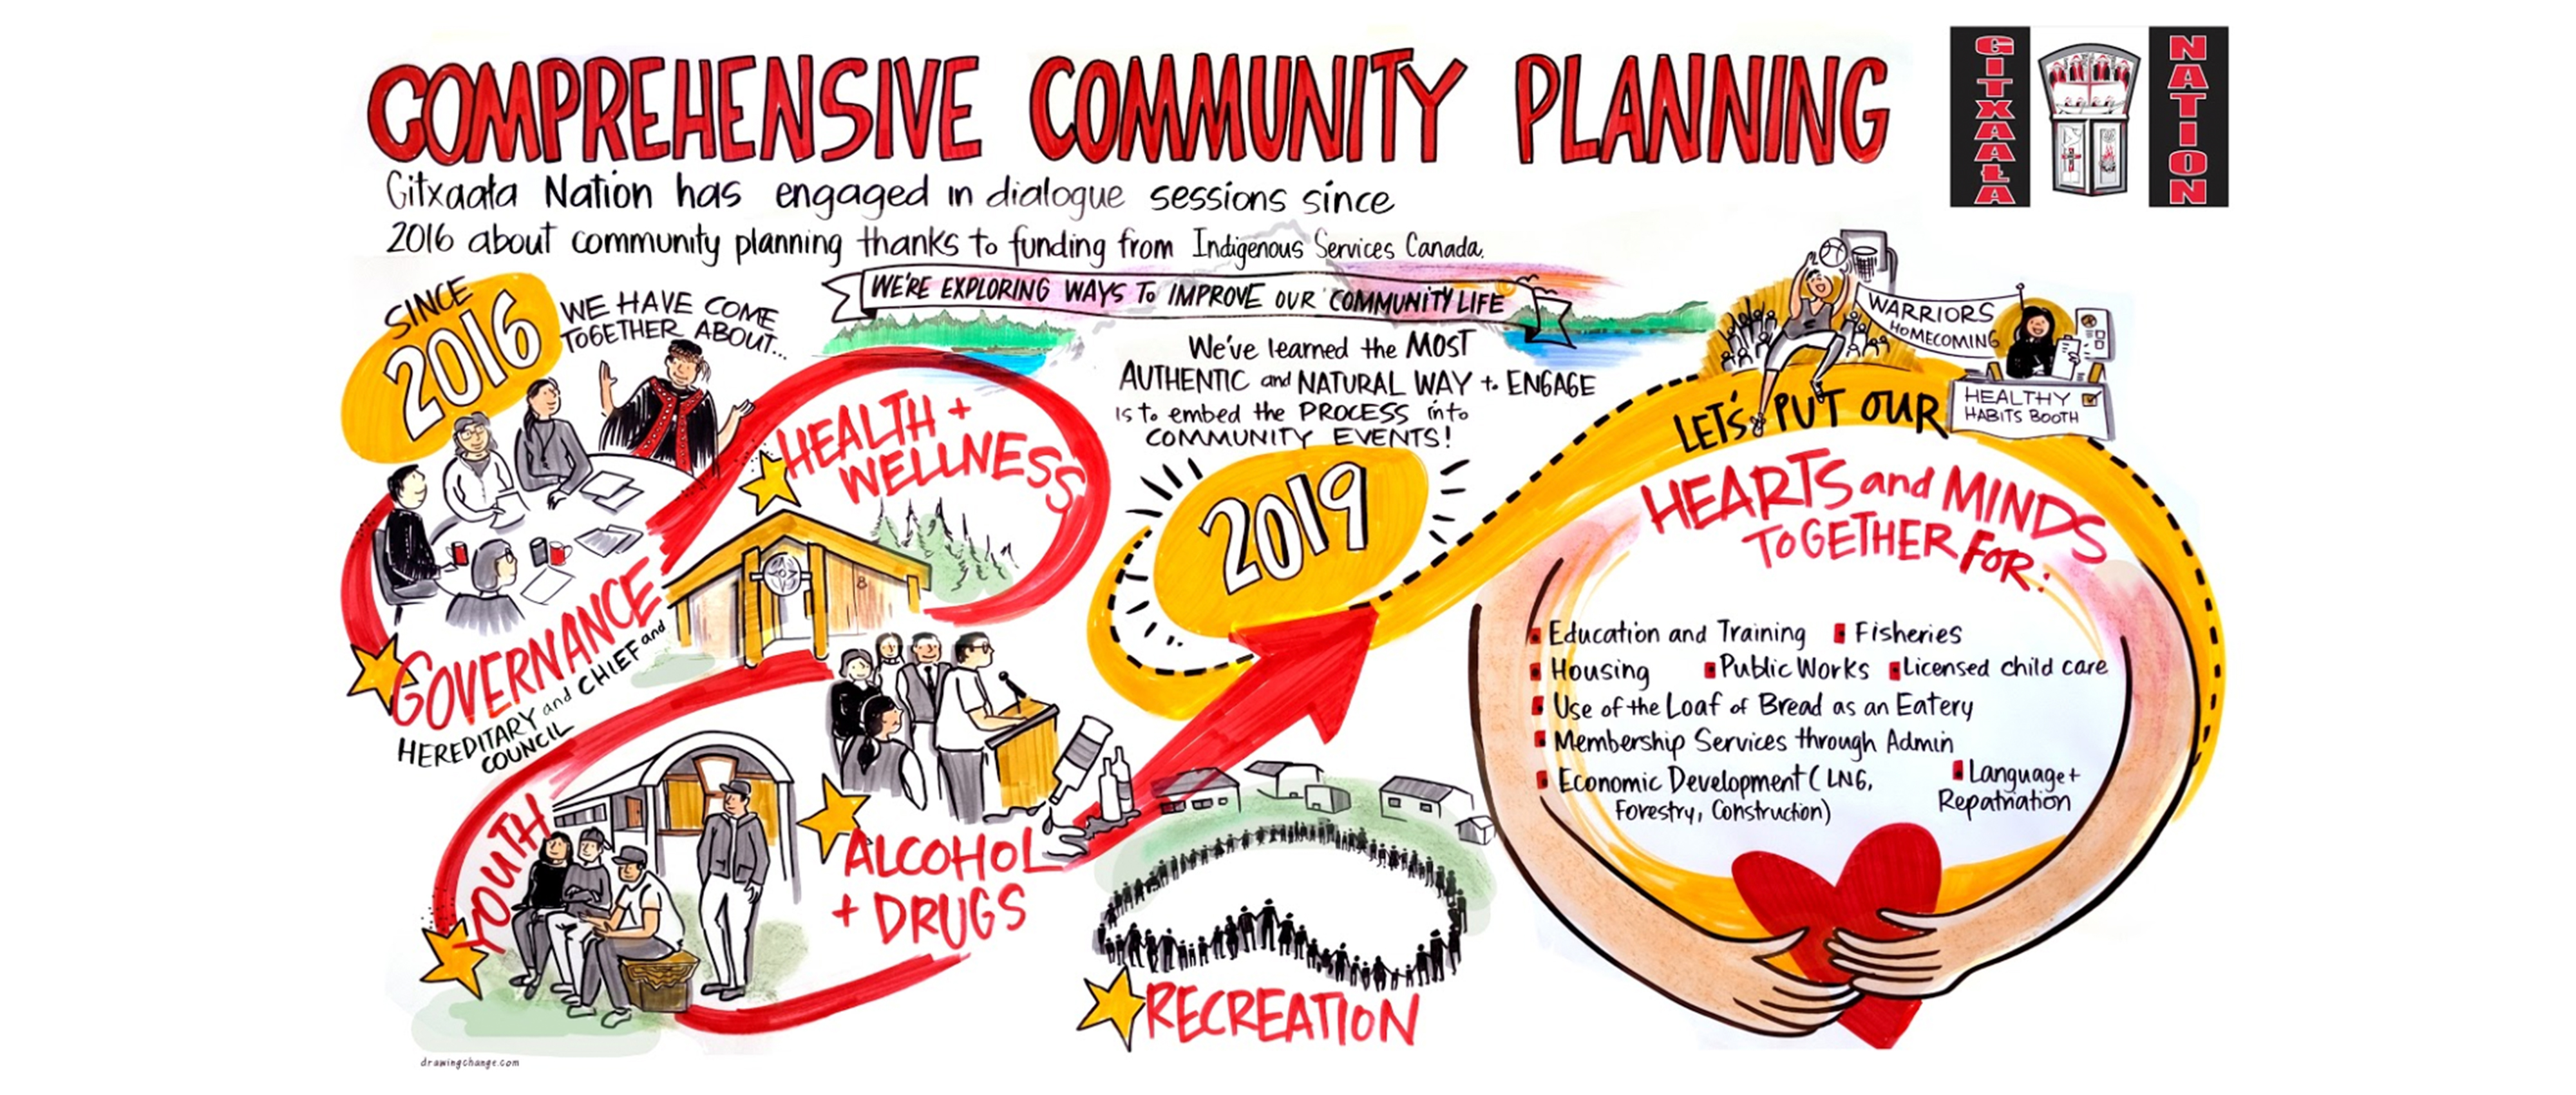 Gixaala Nation illustrated community dialogue sessions